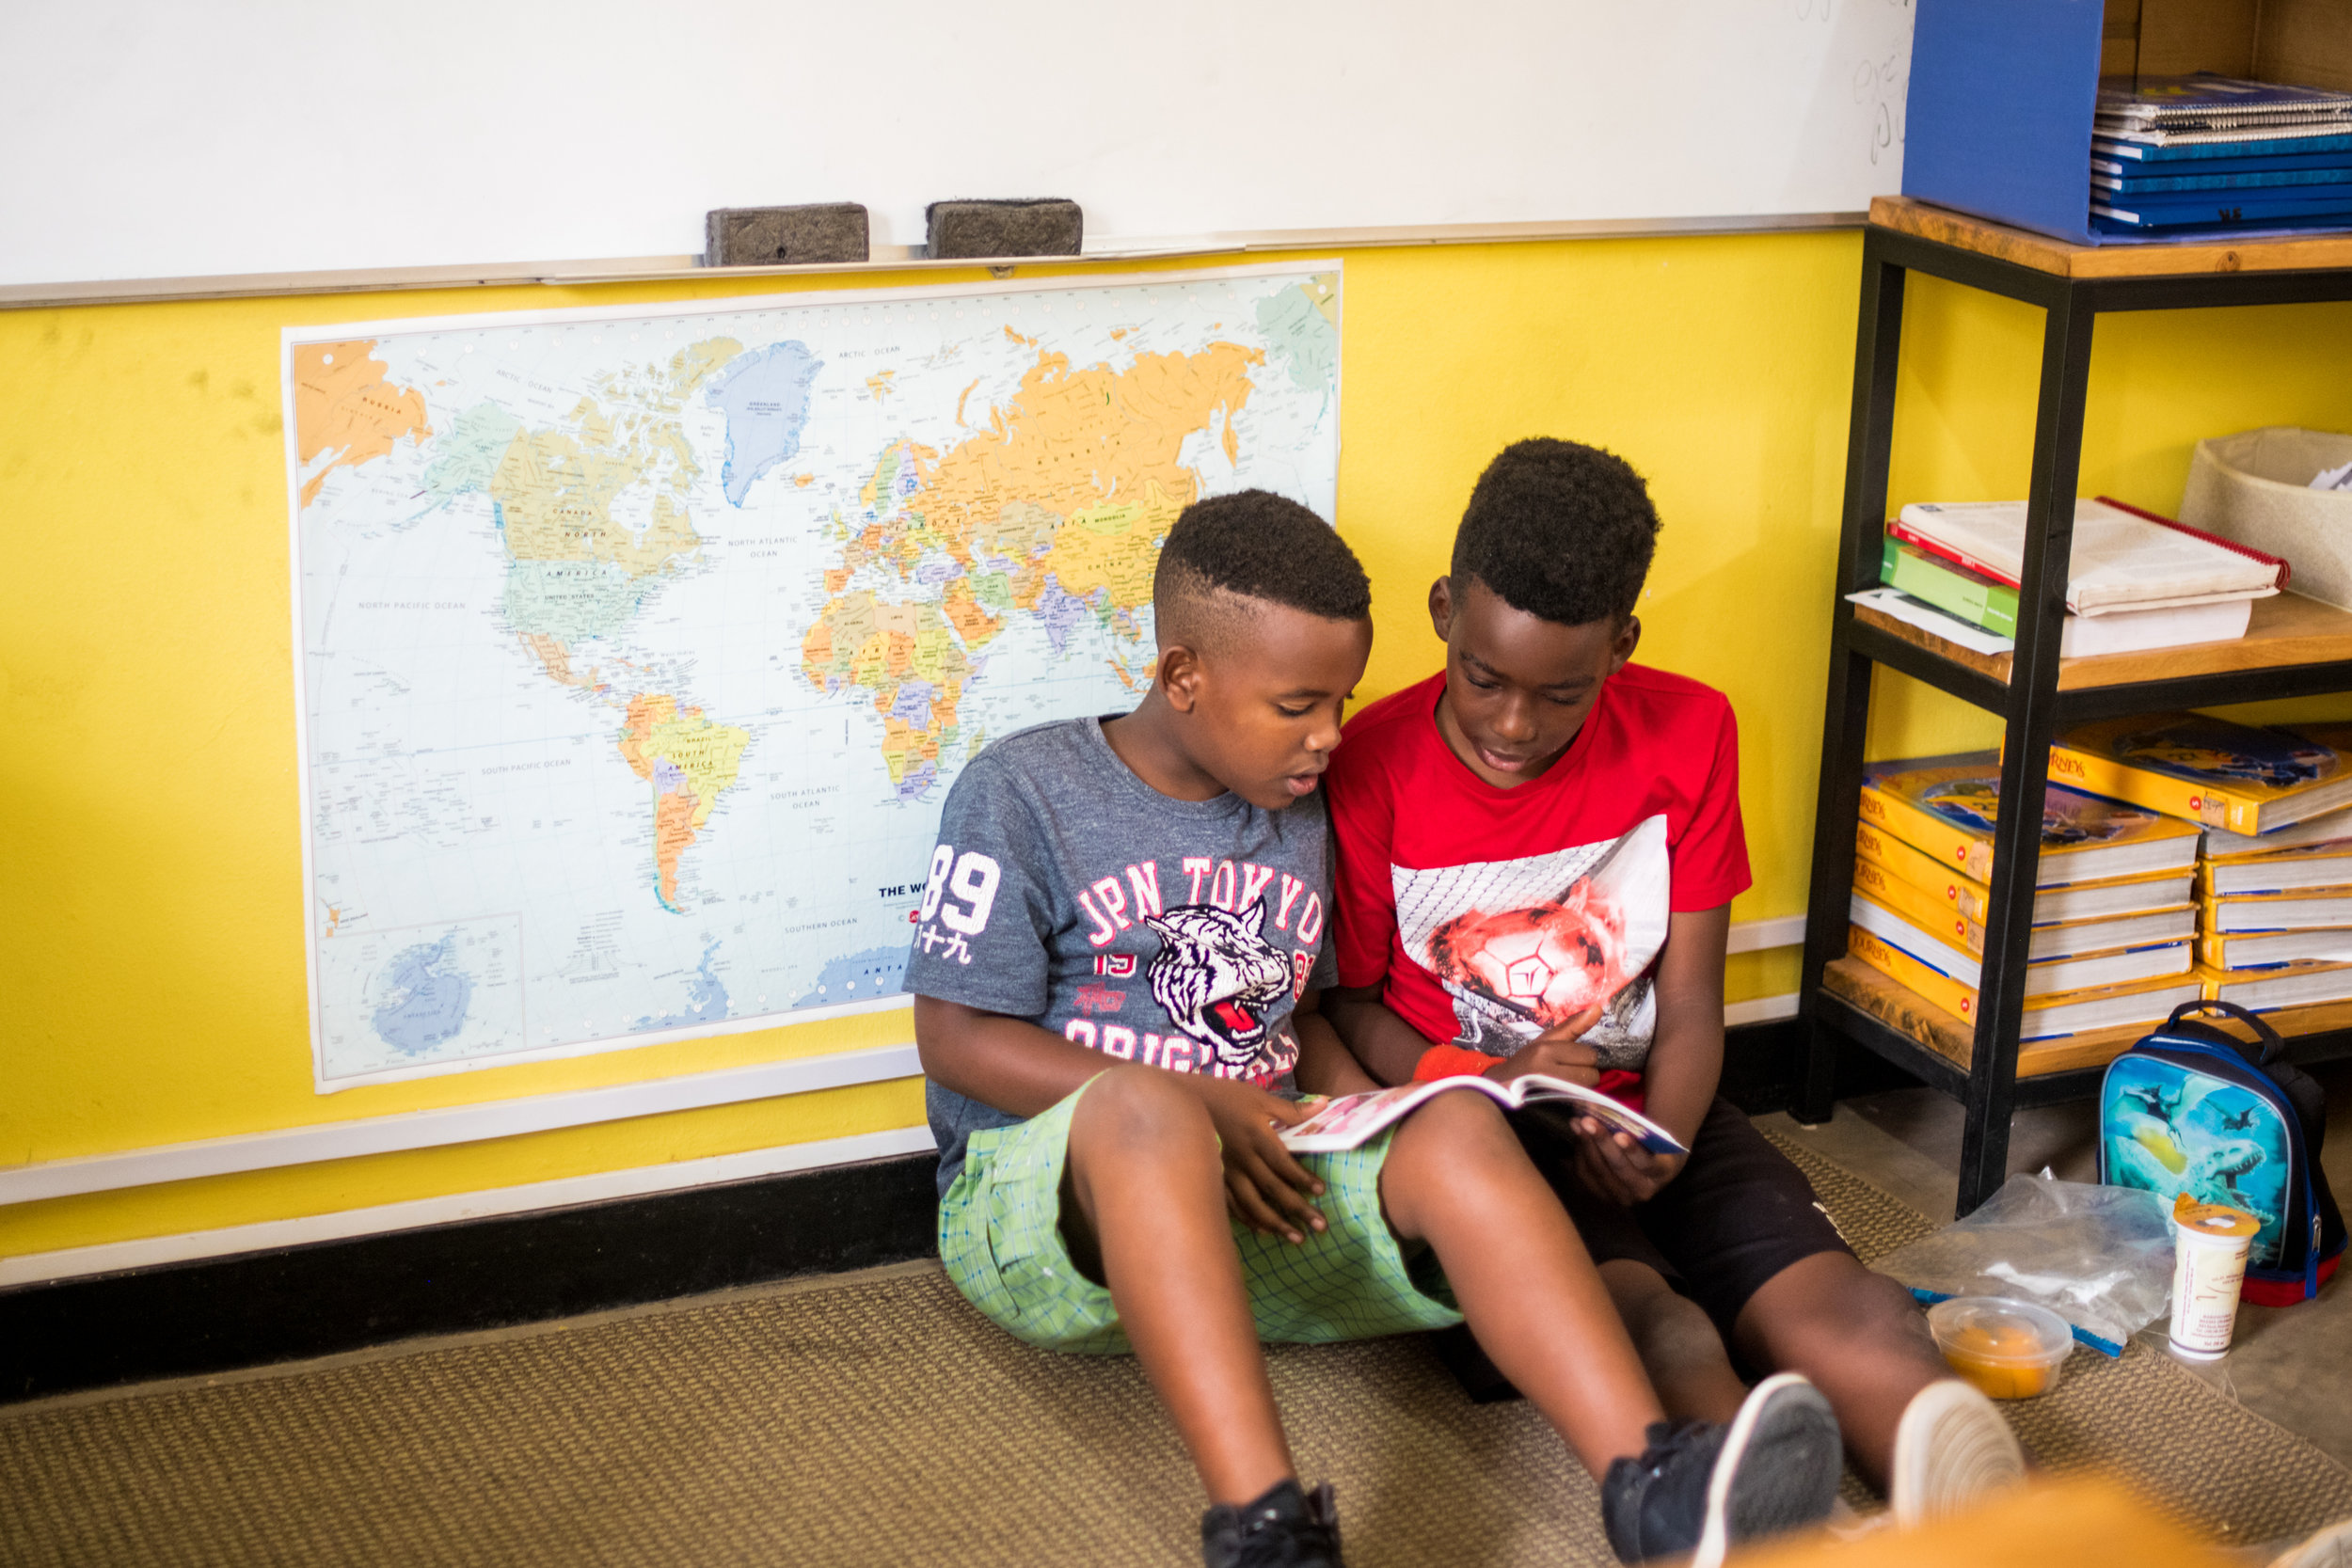 To bless... - Our goal is to serve. B2THEWORLD desires to give opportunities for growth that children and families might not even be able to dream about yet. Our institutions will build into children by giving them tools and a safe environment to grow physically, educationally and spiritually.